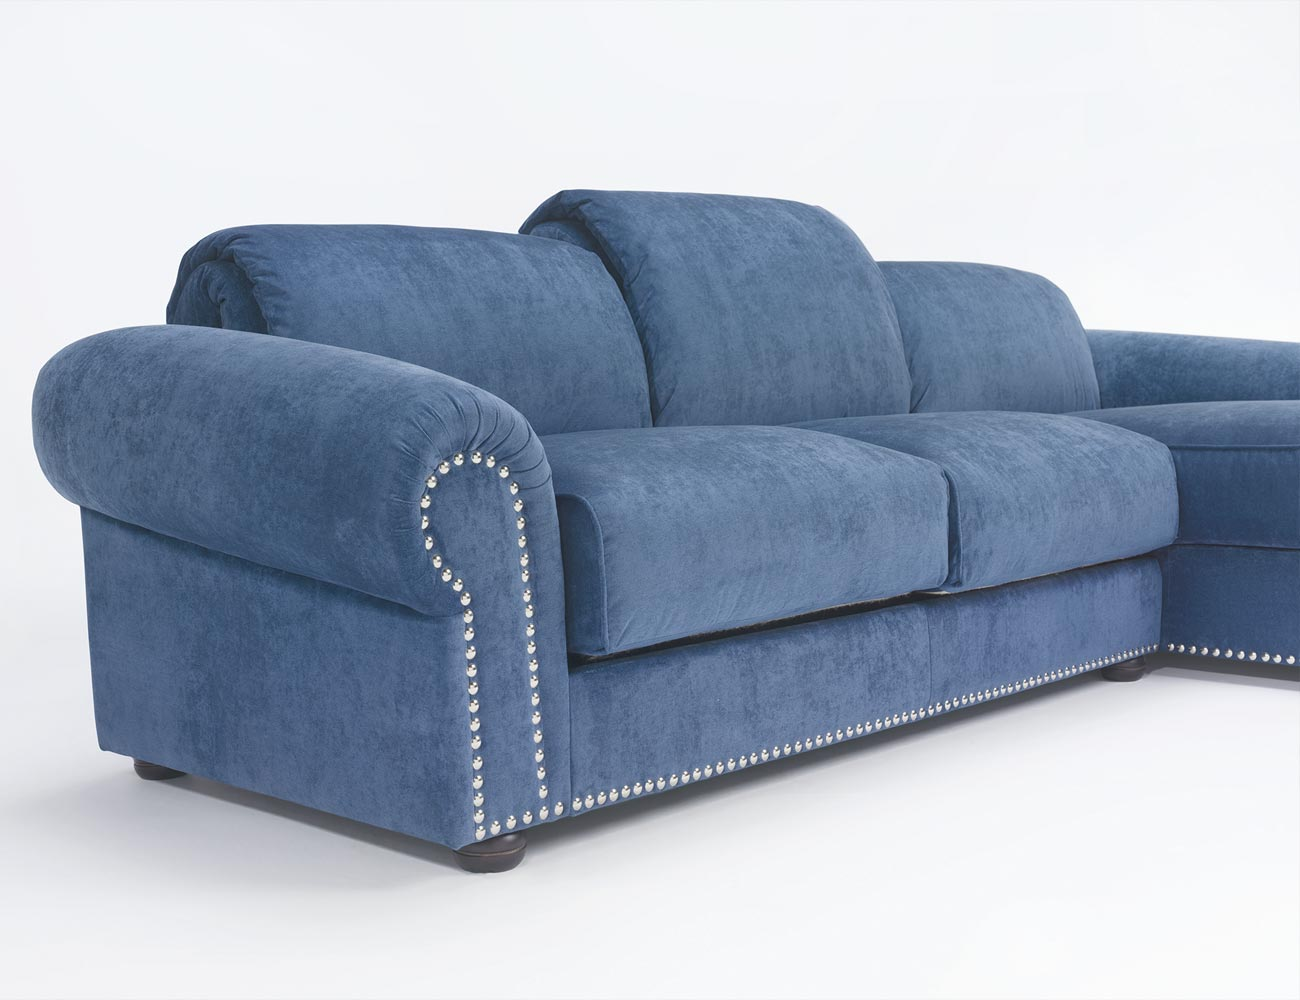 Sofa chaiselongue gran lujo decorativo azul 142